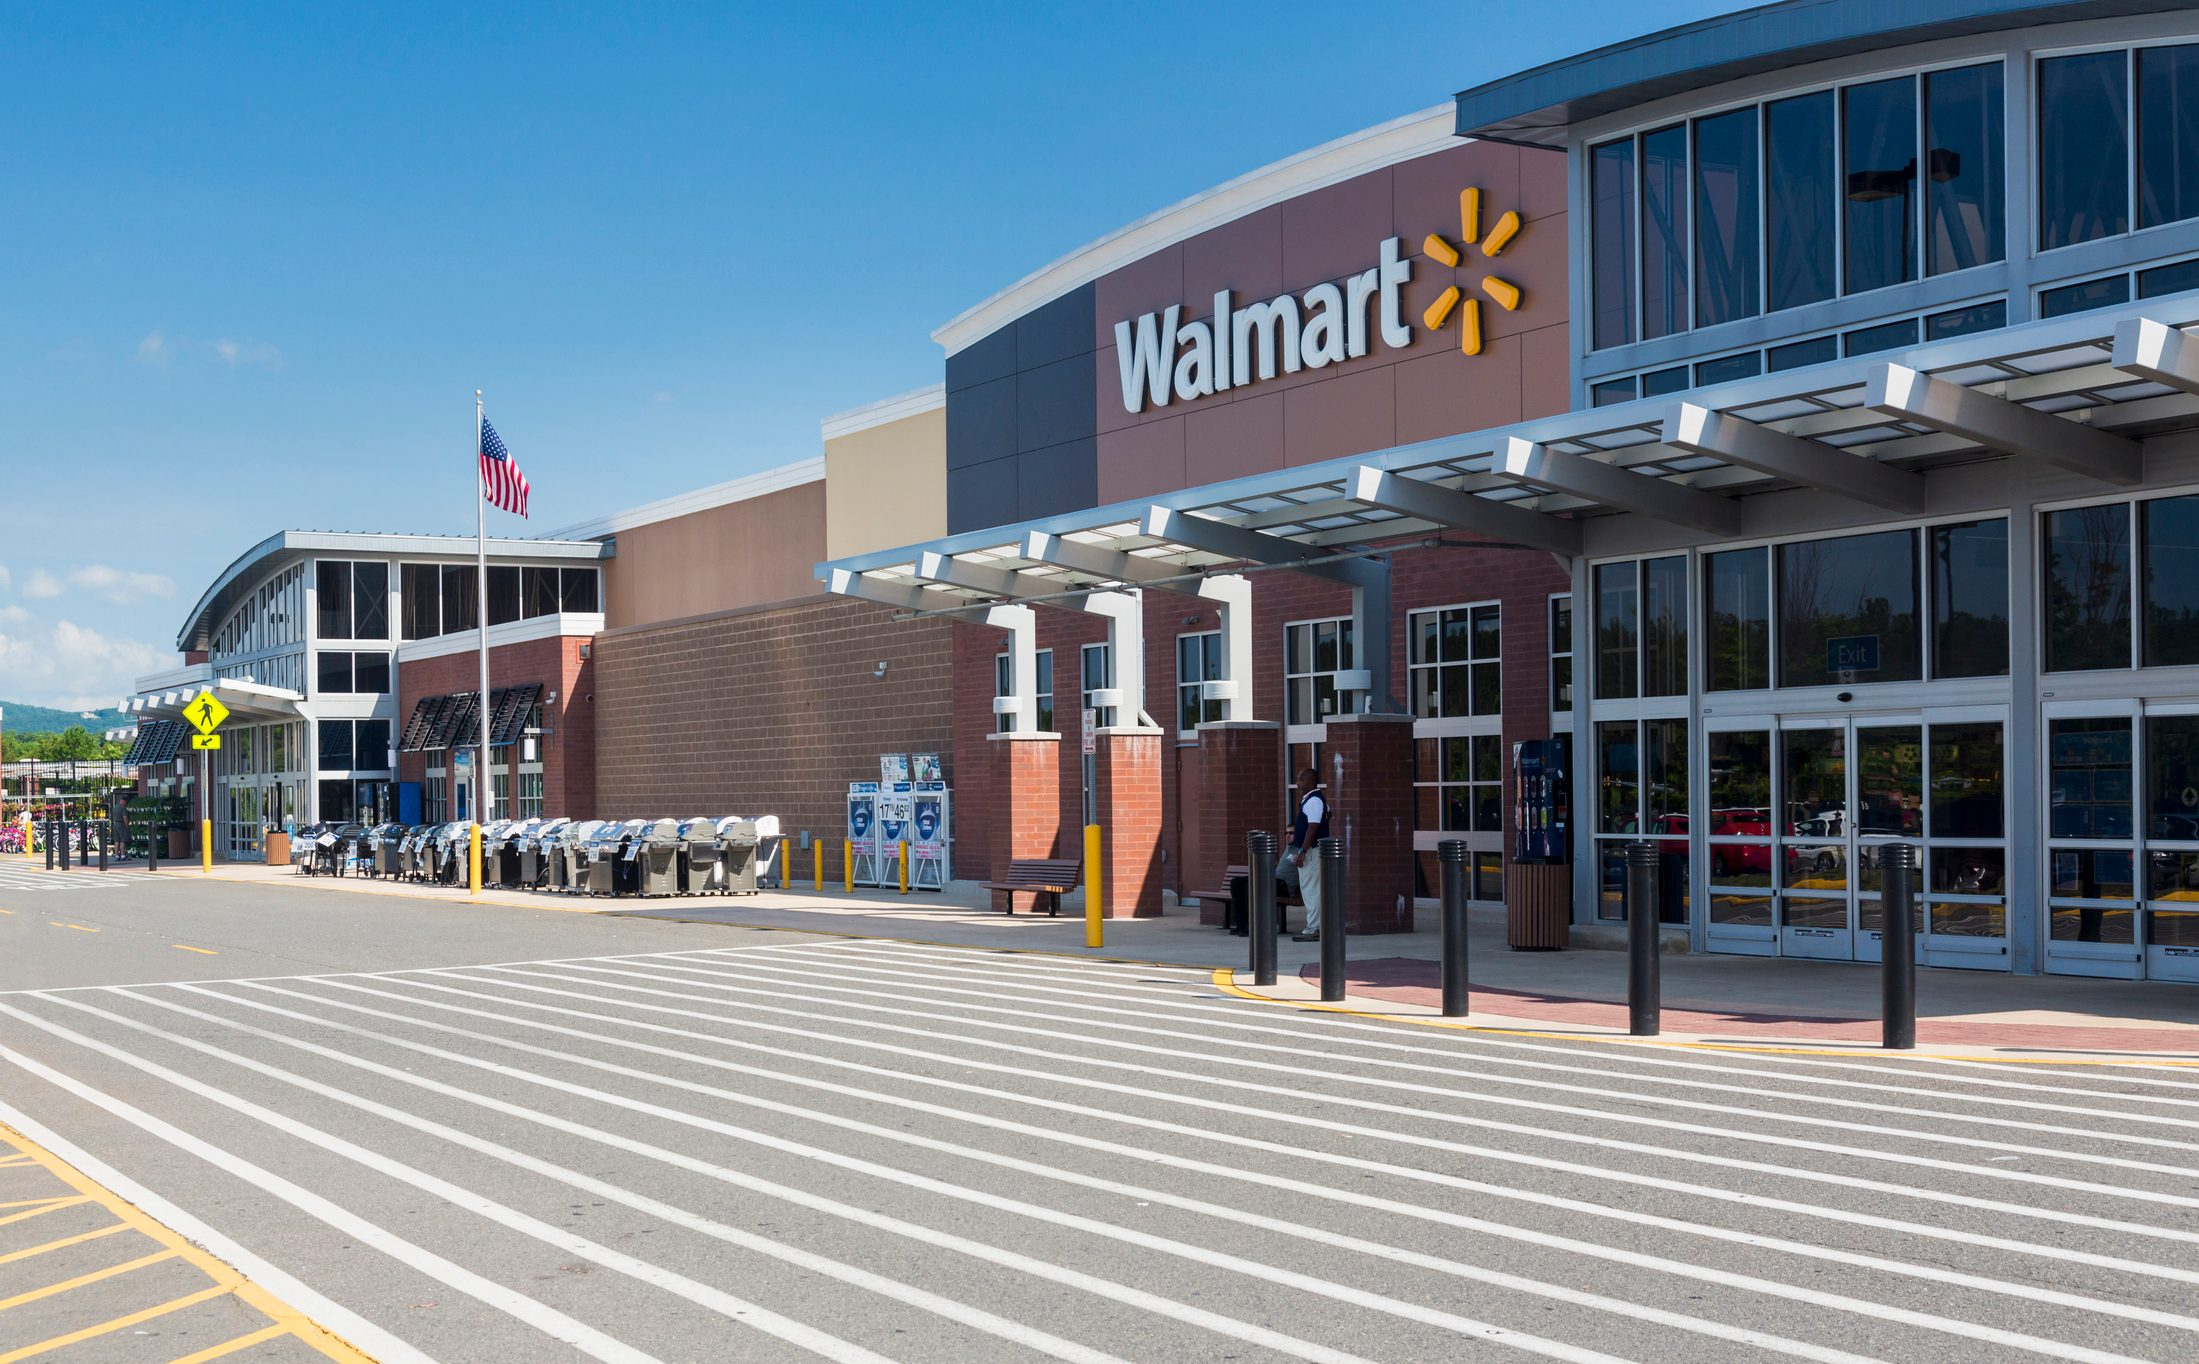 Entrance to large Walmart food supermarket or superstore in Haymarket, Virginia, USA